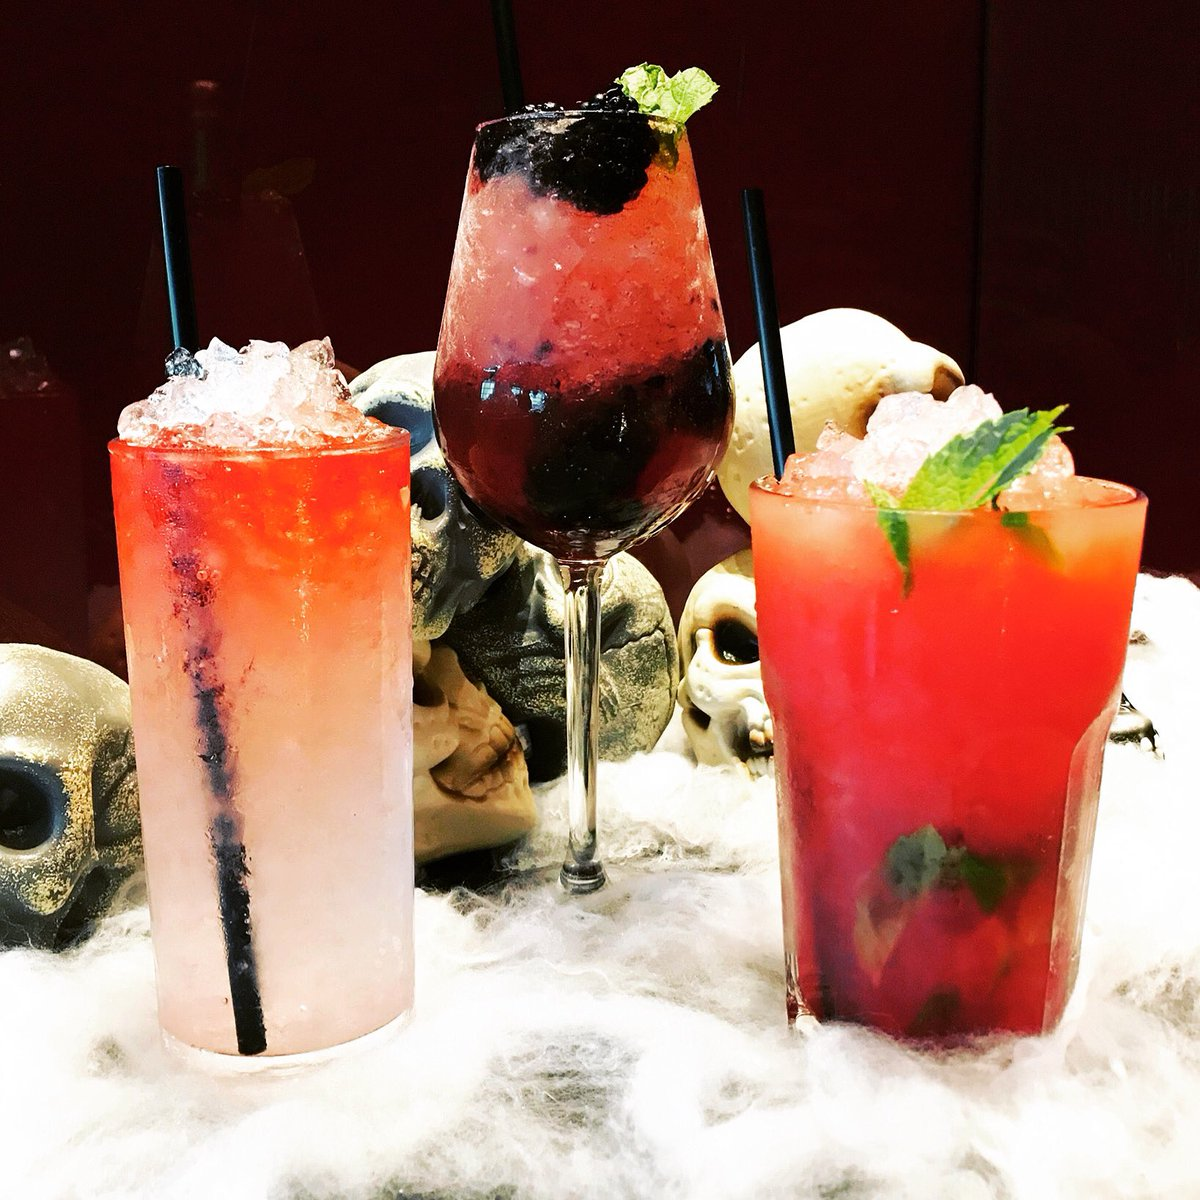 Like the look of these bad boys?! 🎃💀😉  Well it's #241 all day EVERYDAY from 8-11pm!! 🙌🏼🙌🏼  Grab a bargain #Halloween #cocktail & bag yourself an entry into our #prizedraw to win a years supply of #BACARDI! 🥳🥳  Winner announced on #BloodThirstyThursday (31 October!🦇)